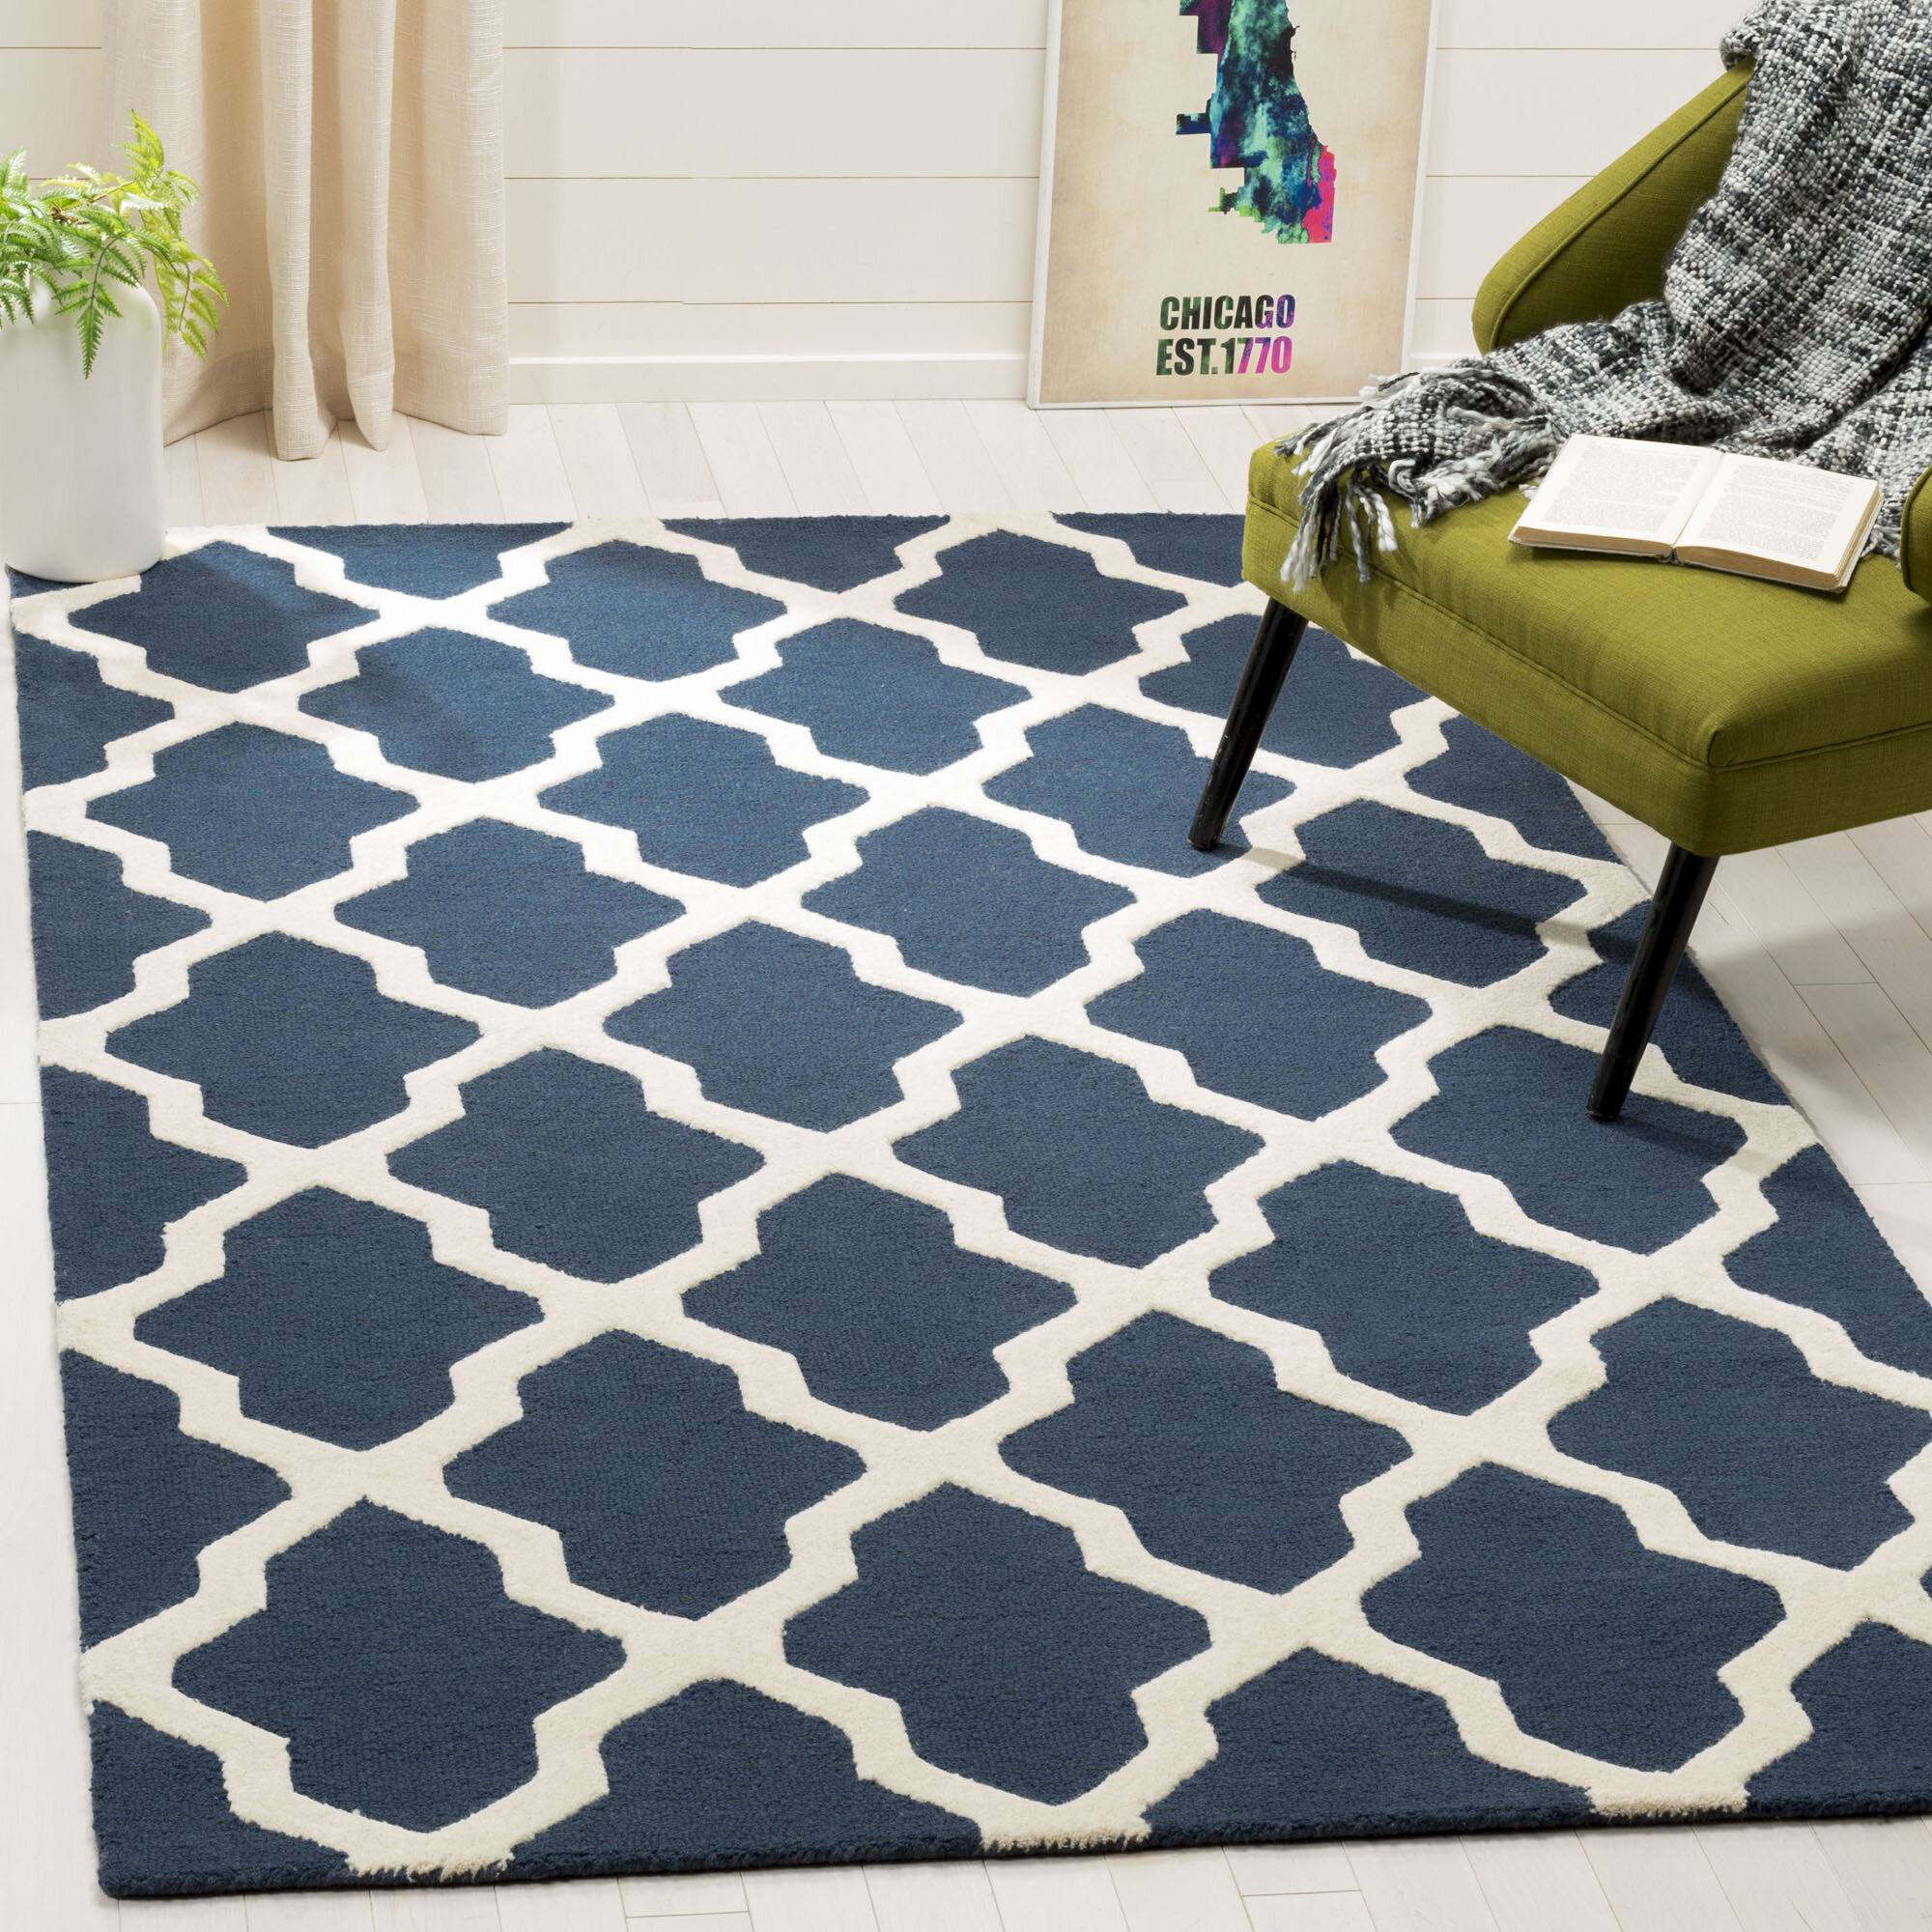 Charlenne Lattice Hand Tufted Wool Navy Blue Ivory Area Rug Reviews Joss Main